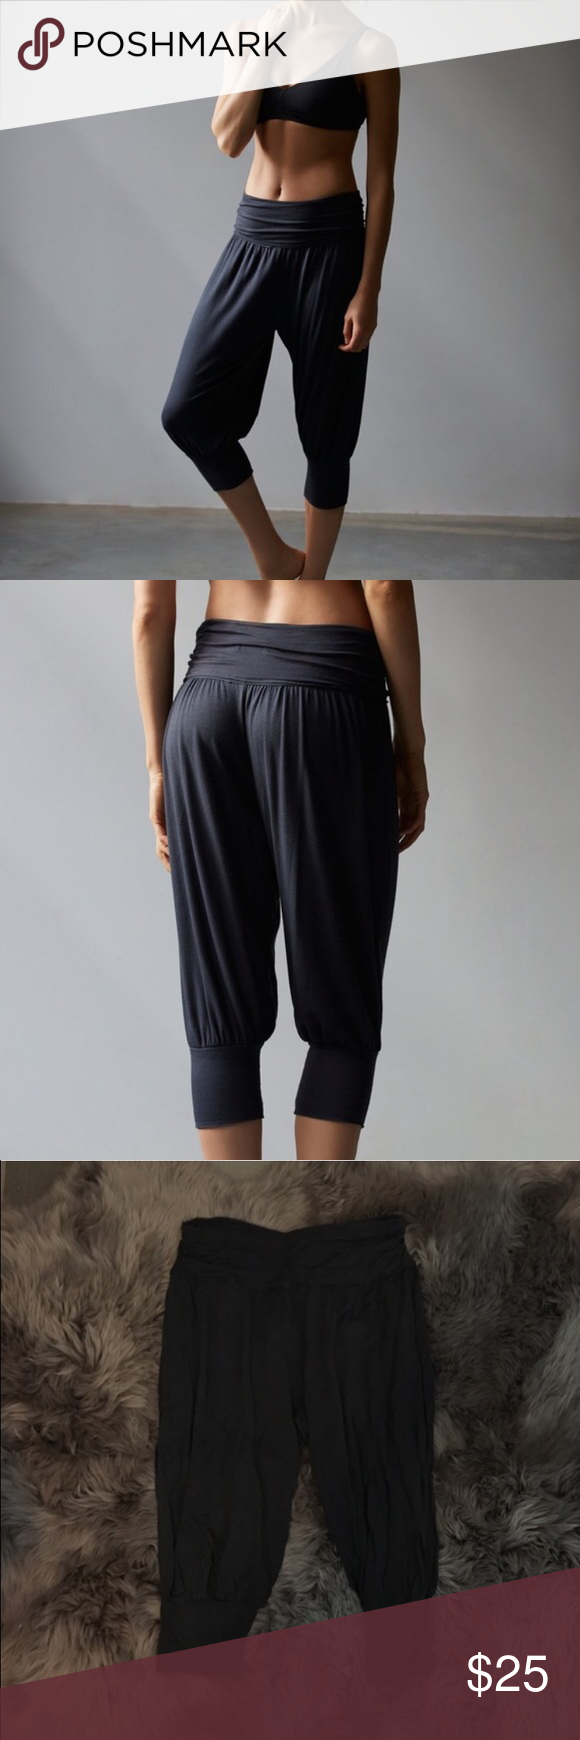 06bf04eacaa Free people genie pants Reposhing as these are too big for me. Size ...